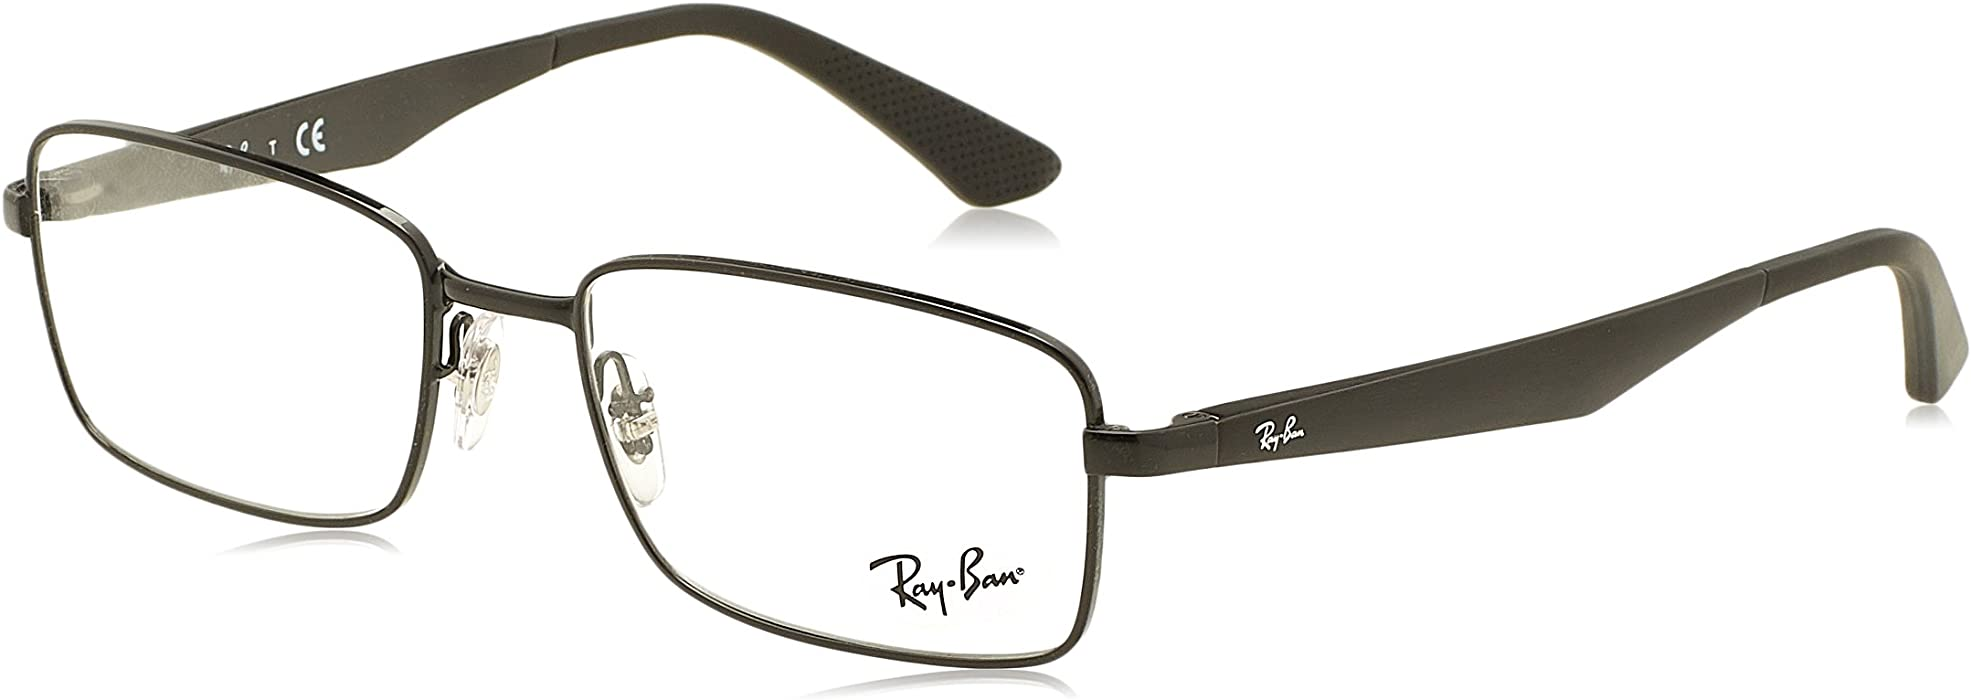 6491de44a2 Amazon.com  Ray-ban RX 6333 2853